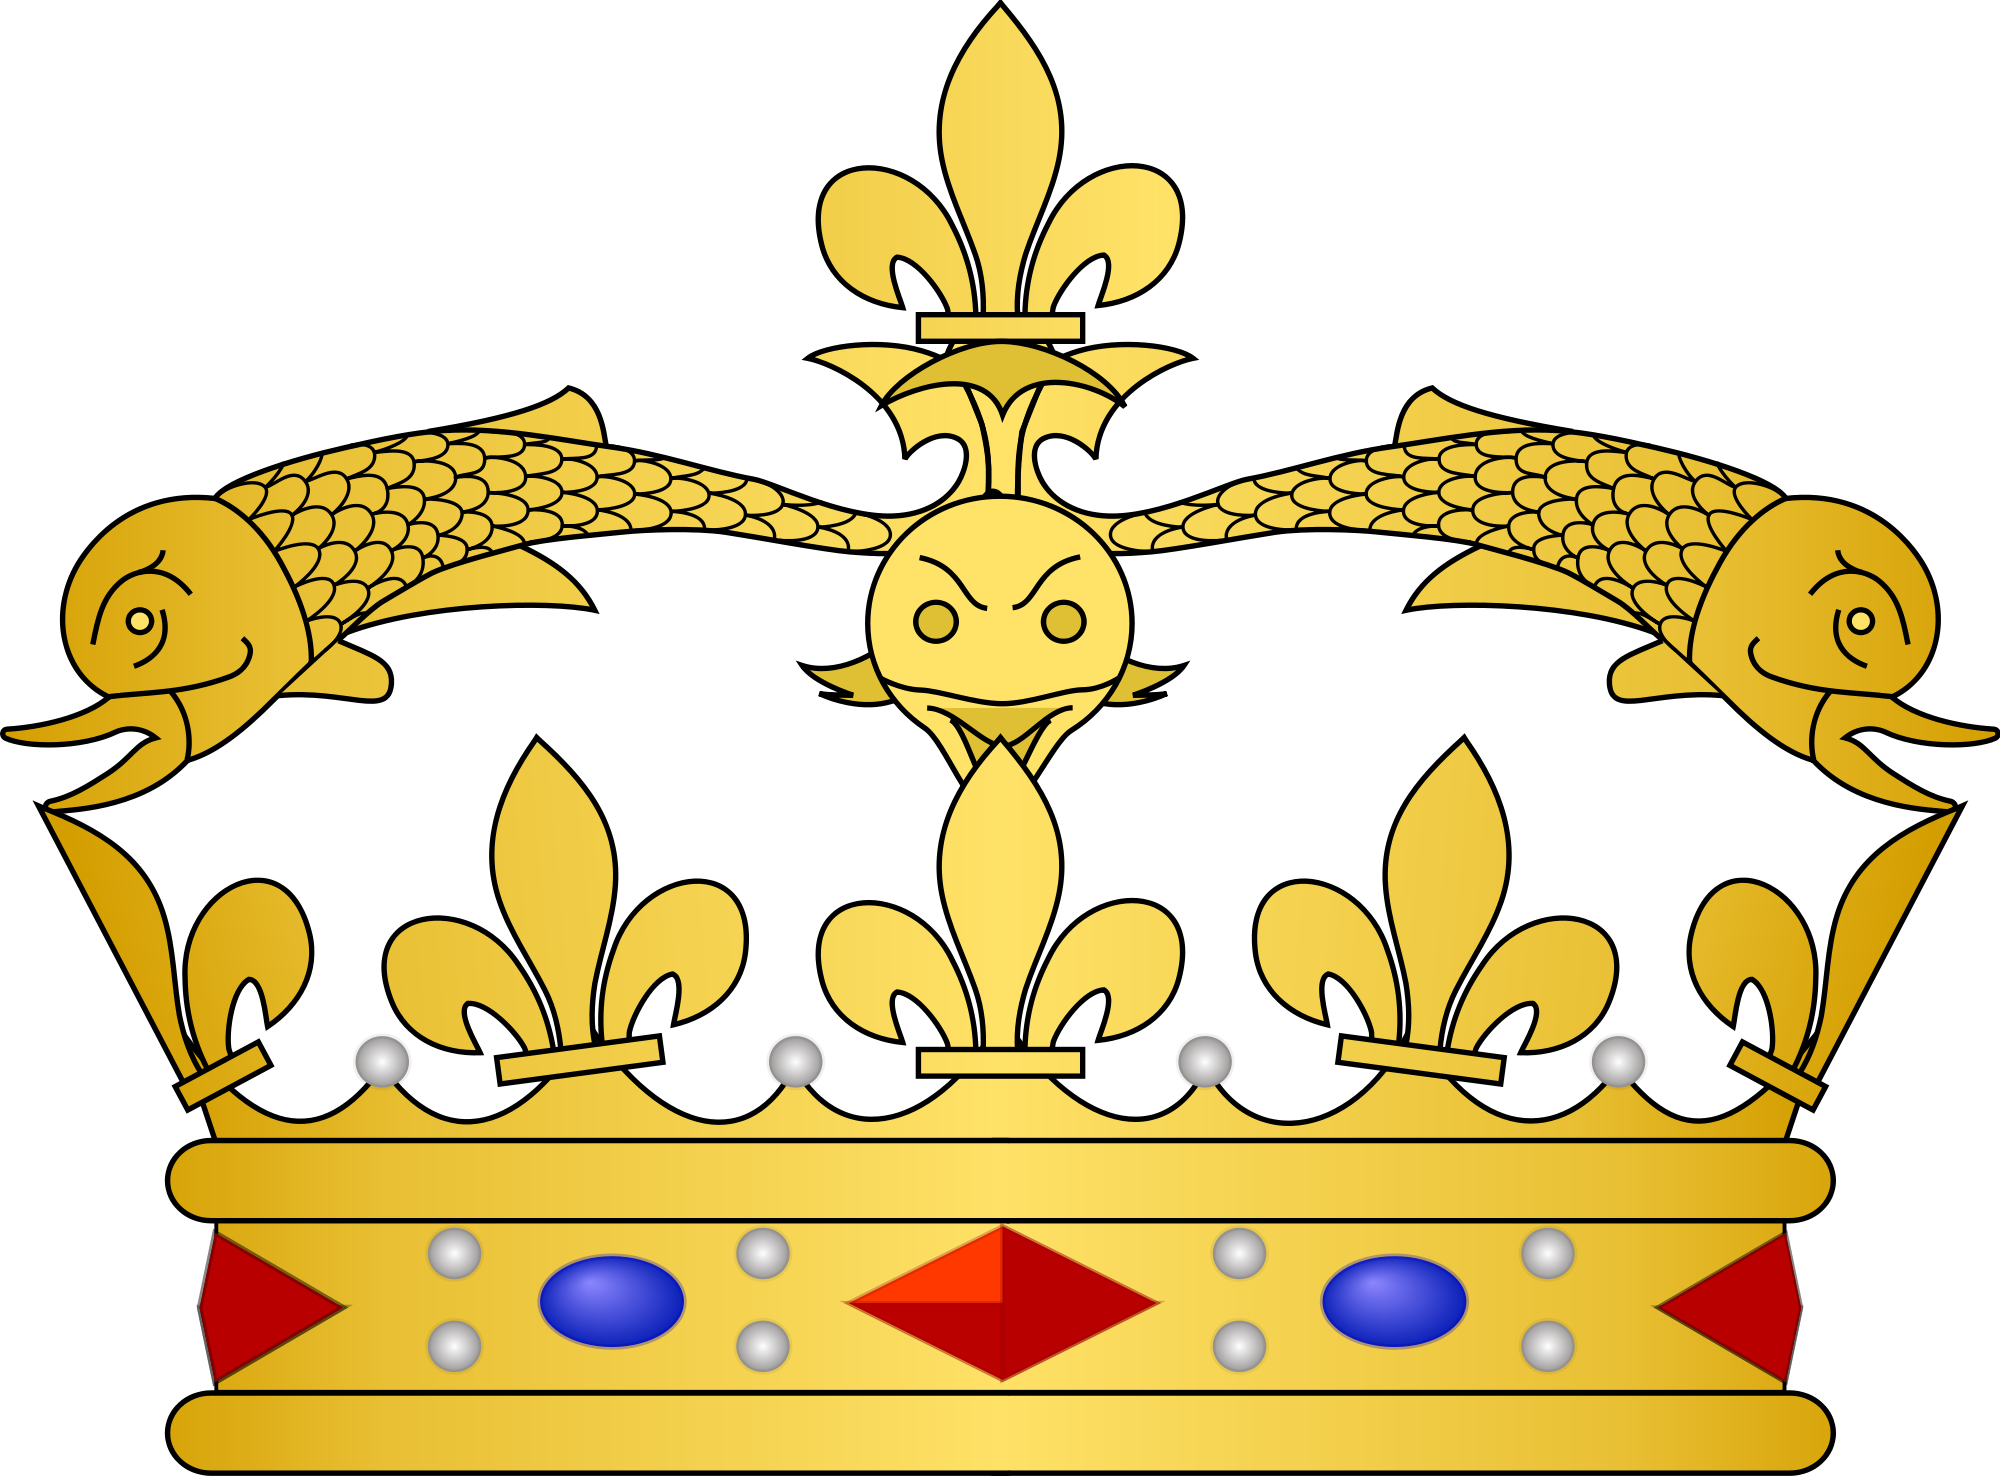 France clipart village french. File heraldic crowns dauphin